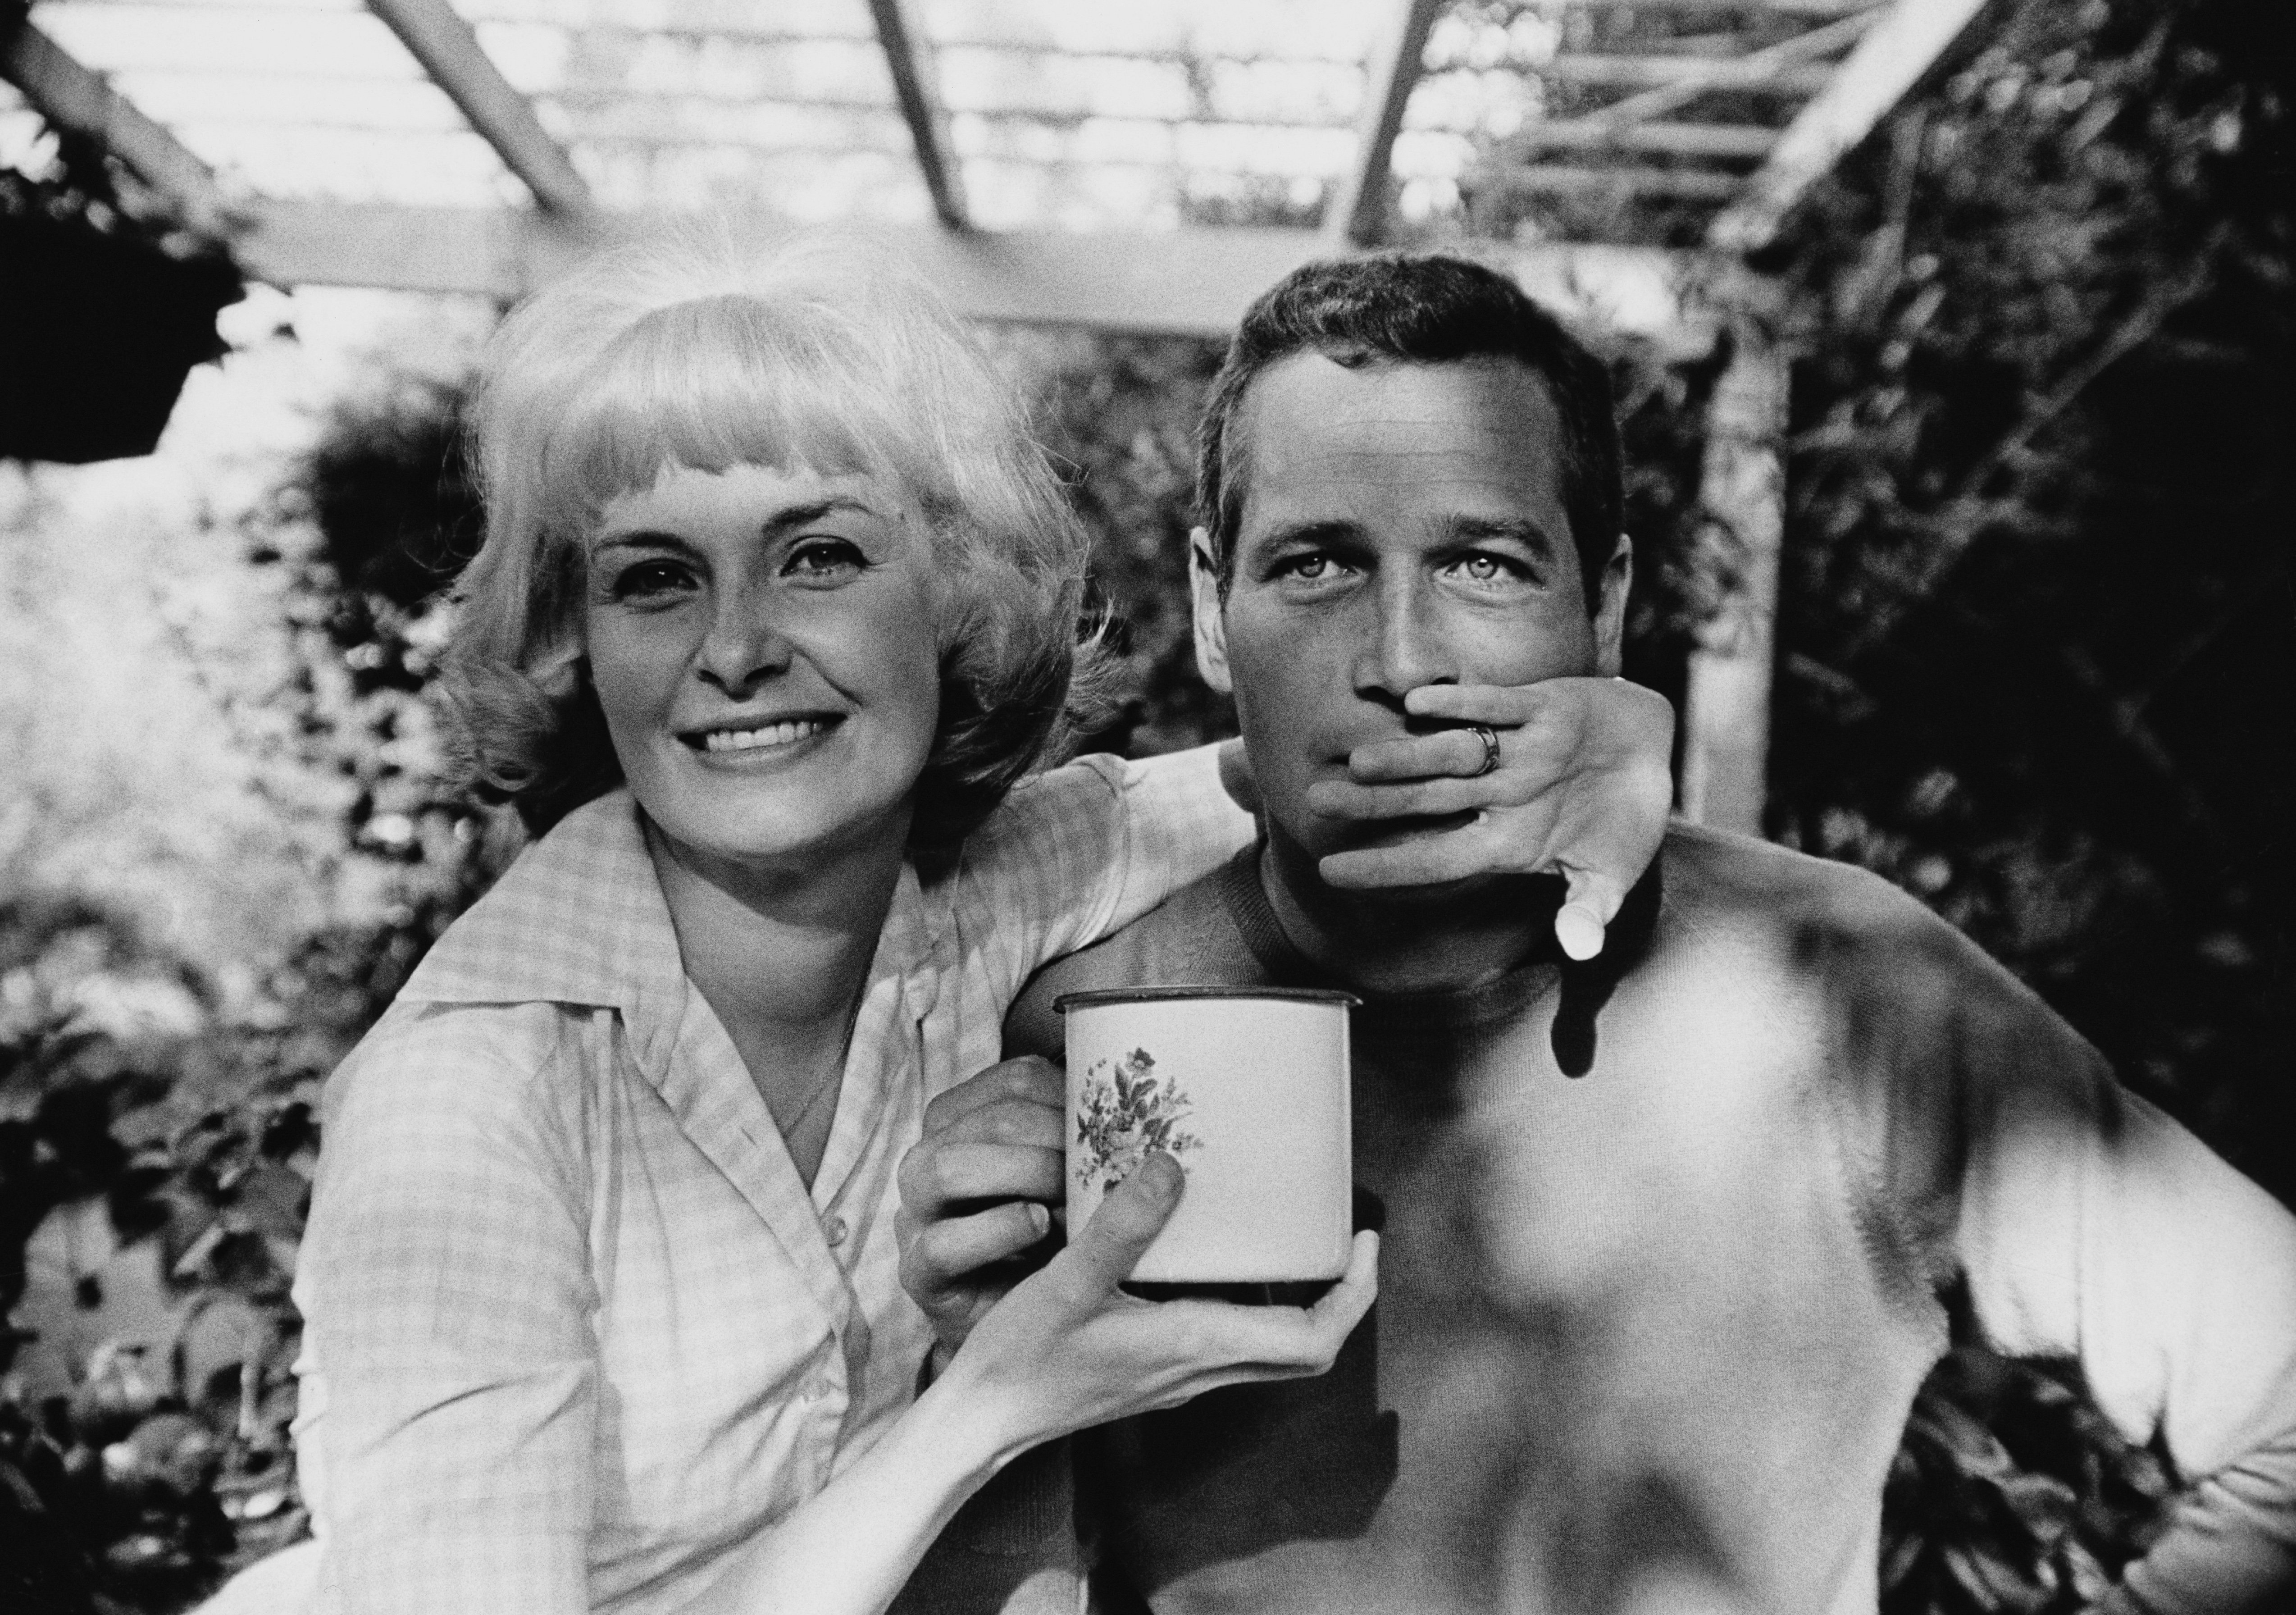 Paul Newman and Joanne Woodward posing playfully, circa 1963 | Photo: Getty Images